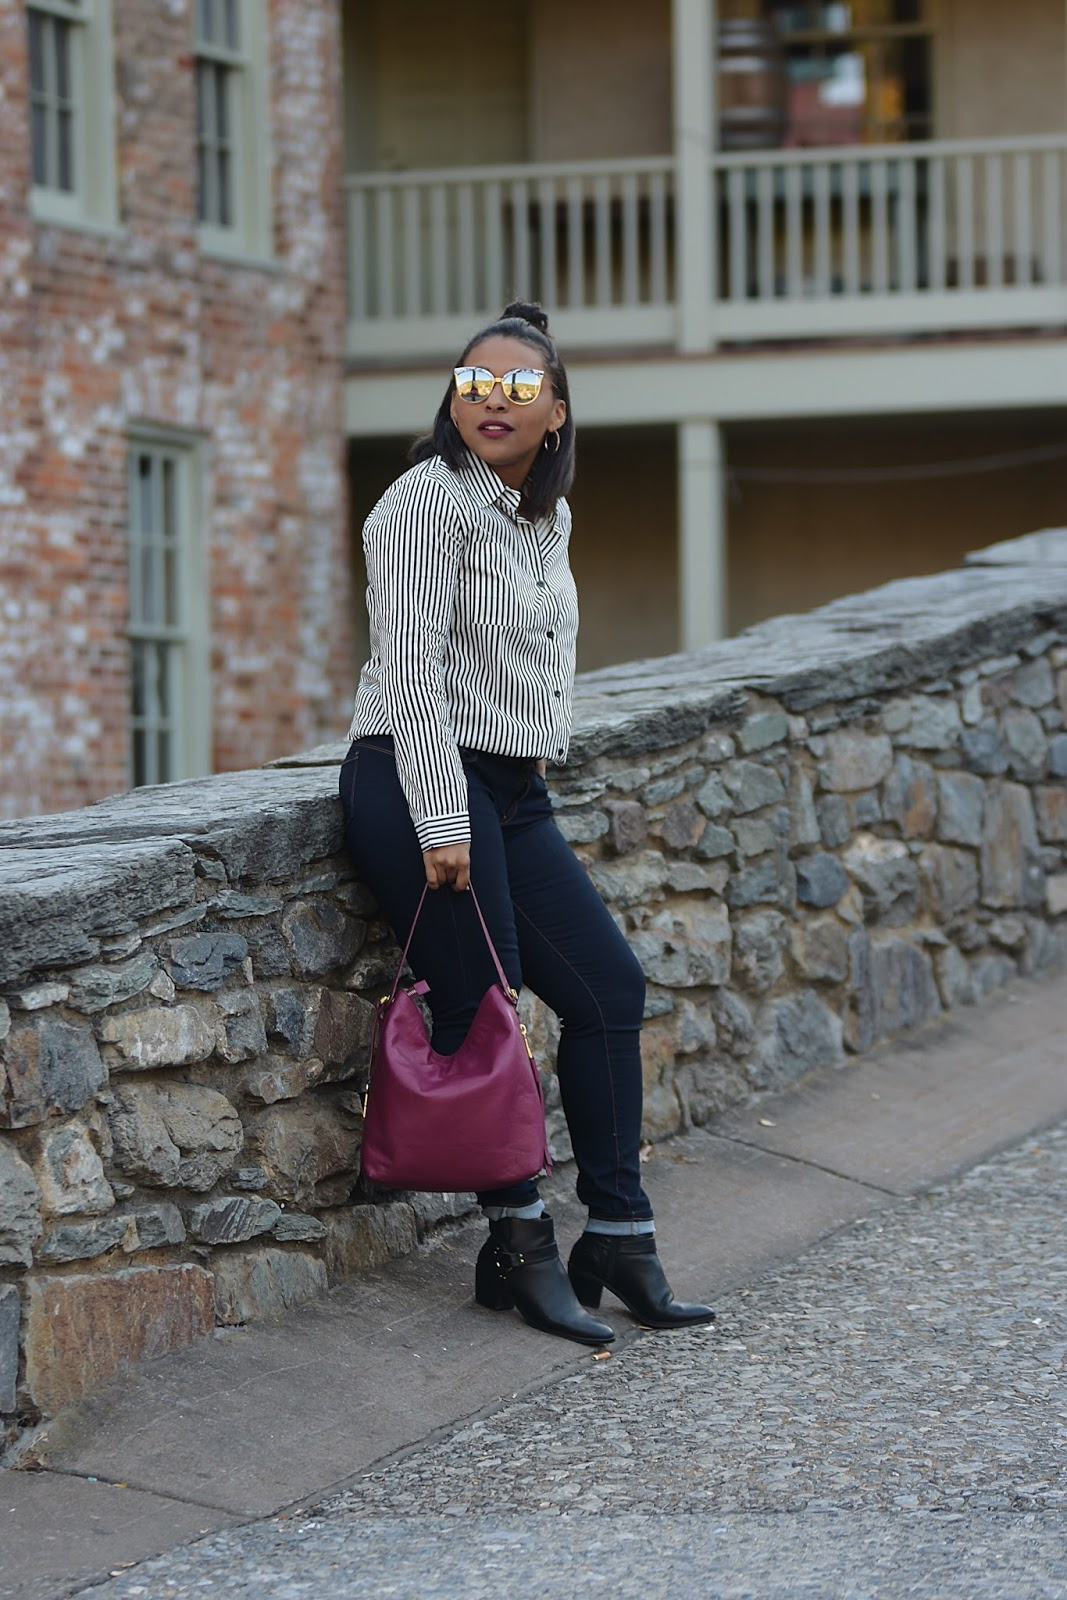 Harpers Ferry, maryland, travel places, fossil, fossil bags, latina blogger, dominican blogger, streetstyle, fall fashion, zaful, west virginia